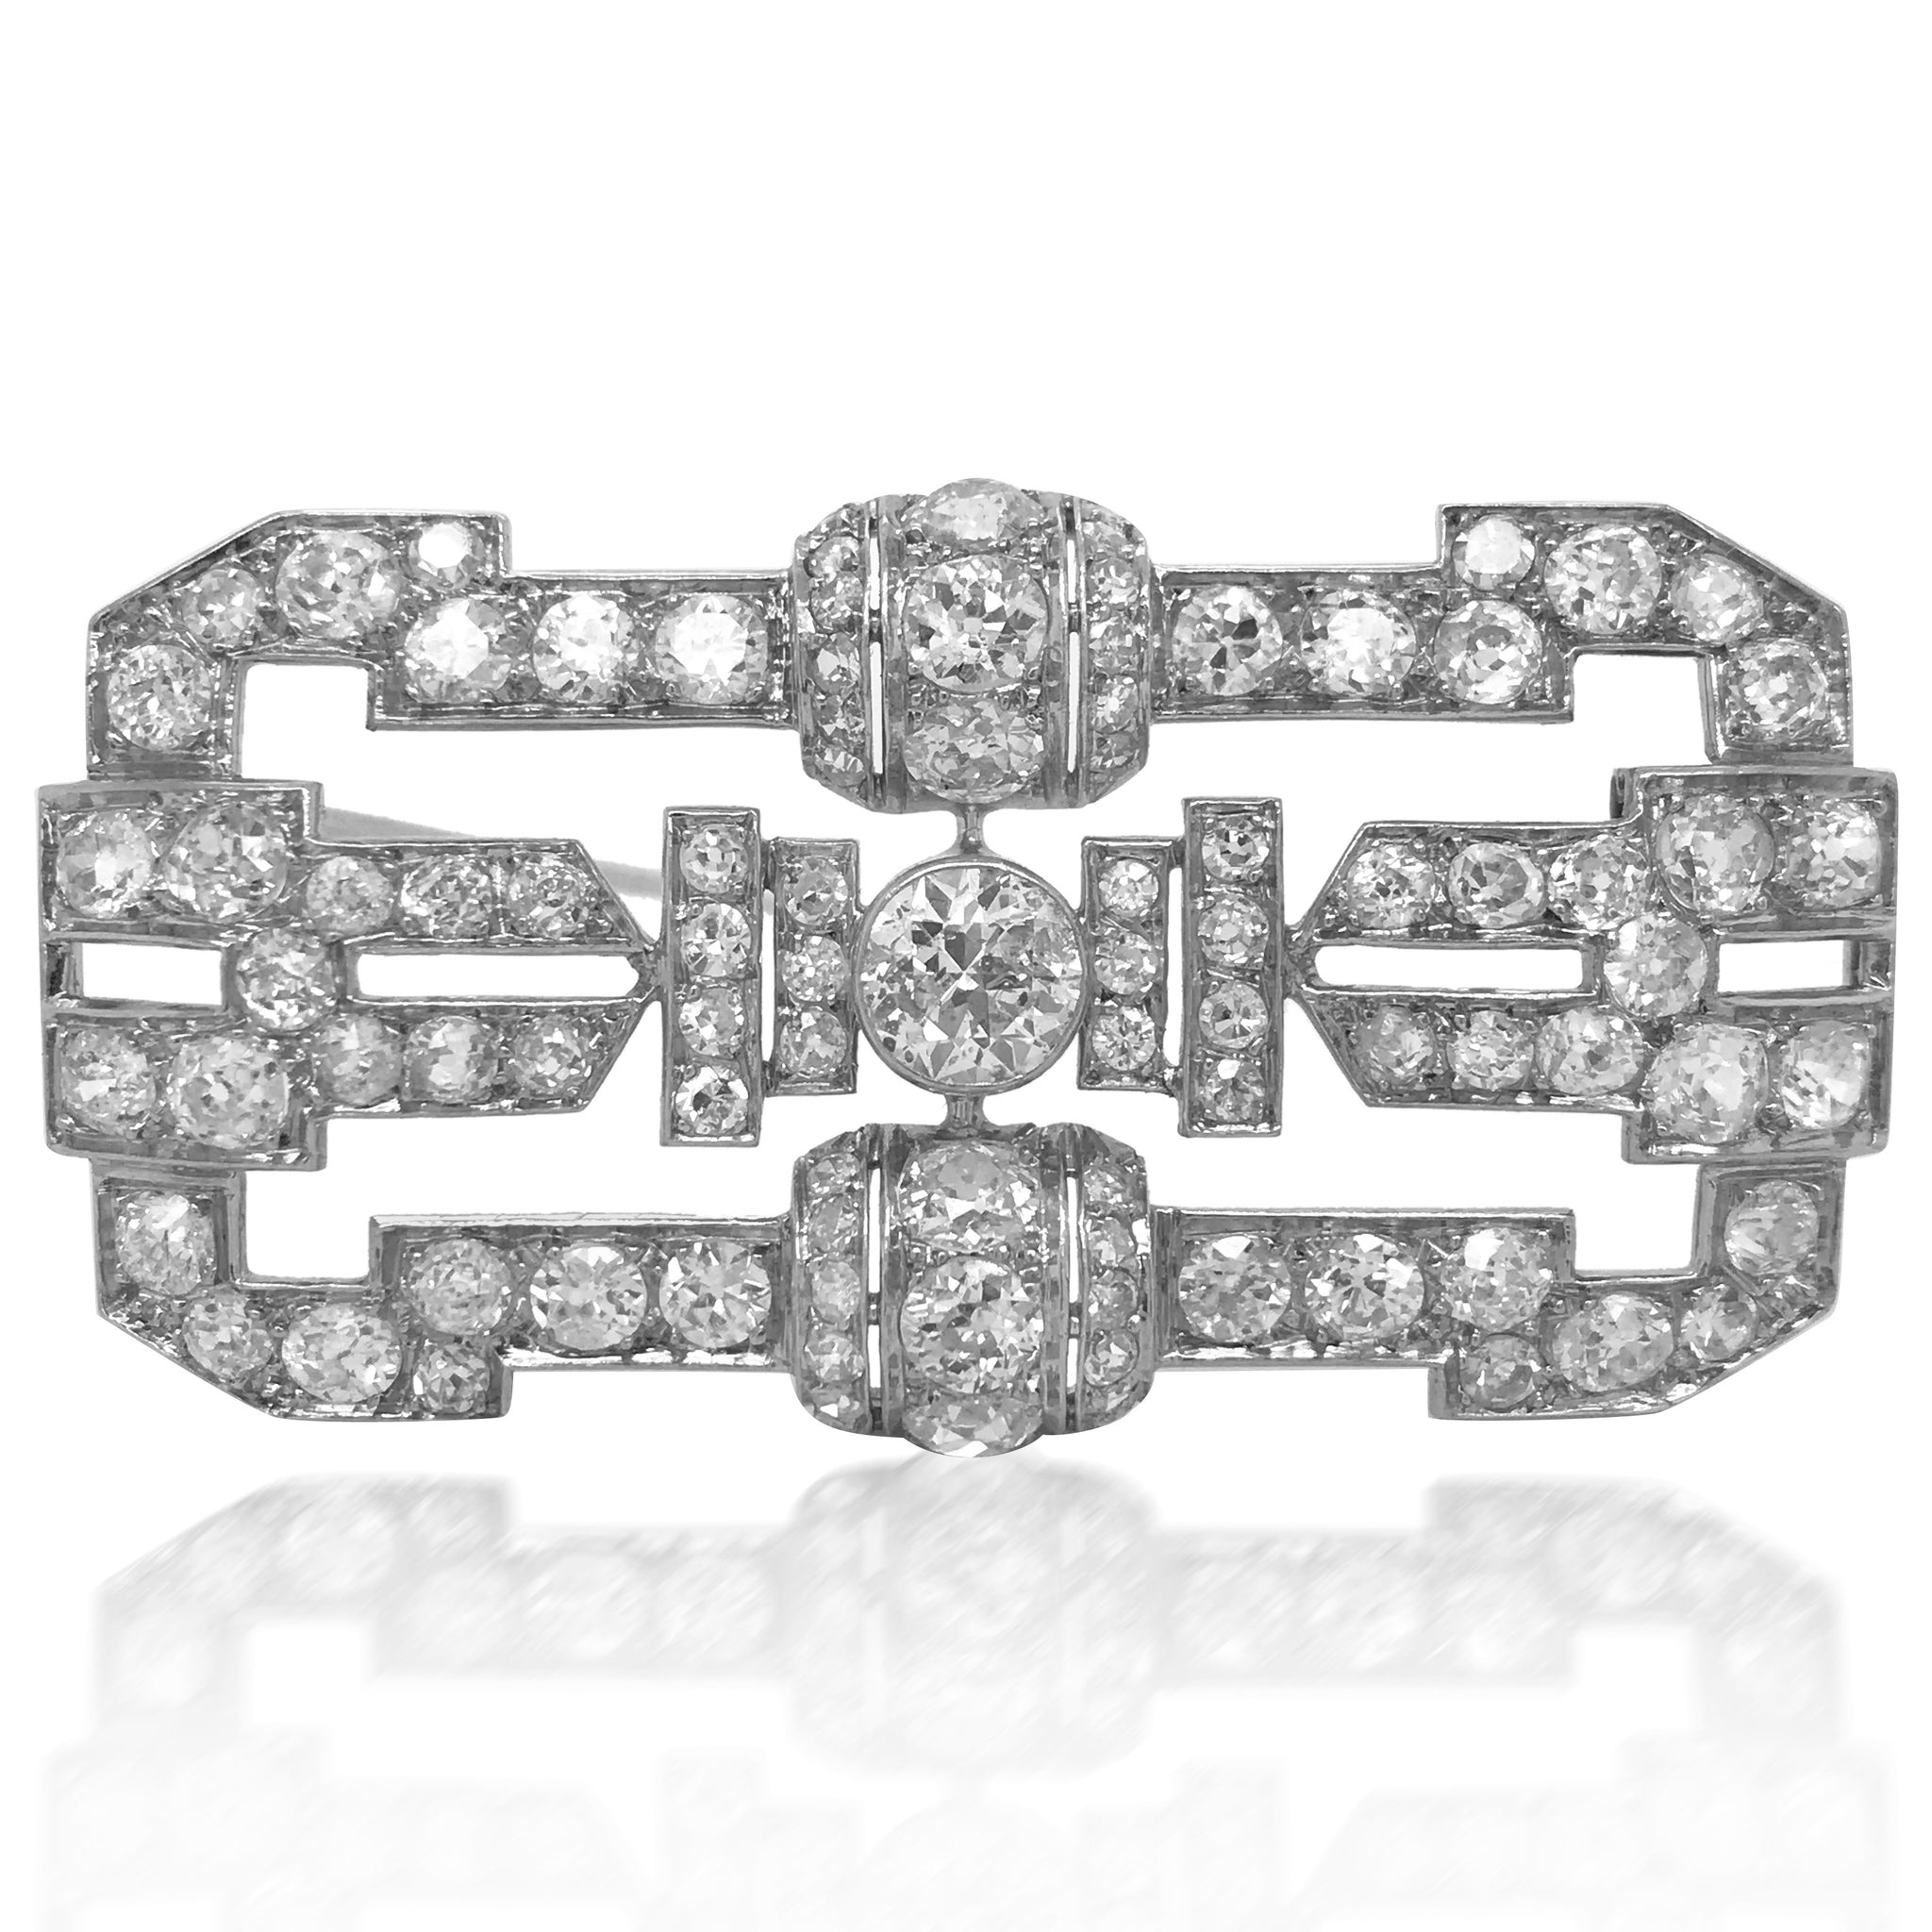 Platinum Diamond Brooch - Lueur Jewelry